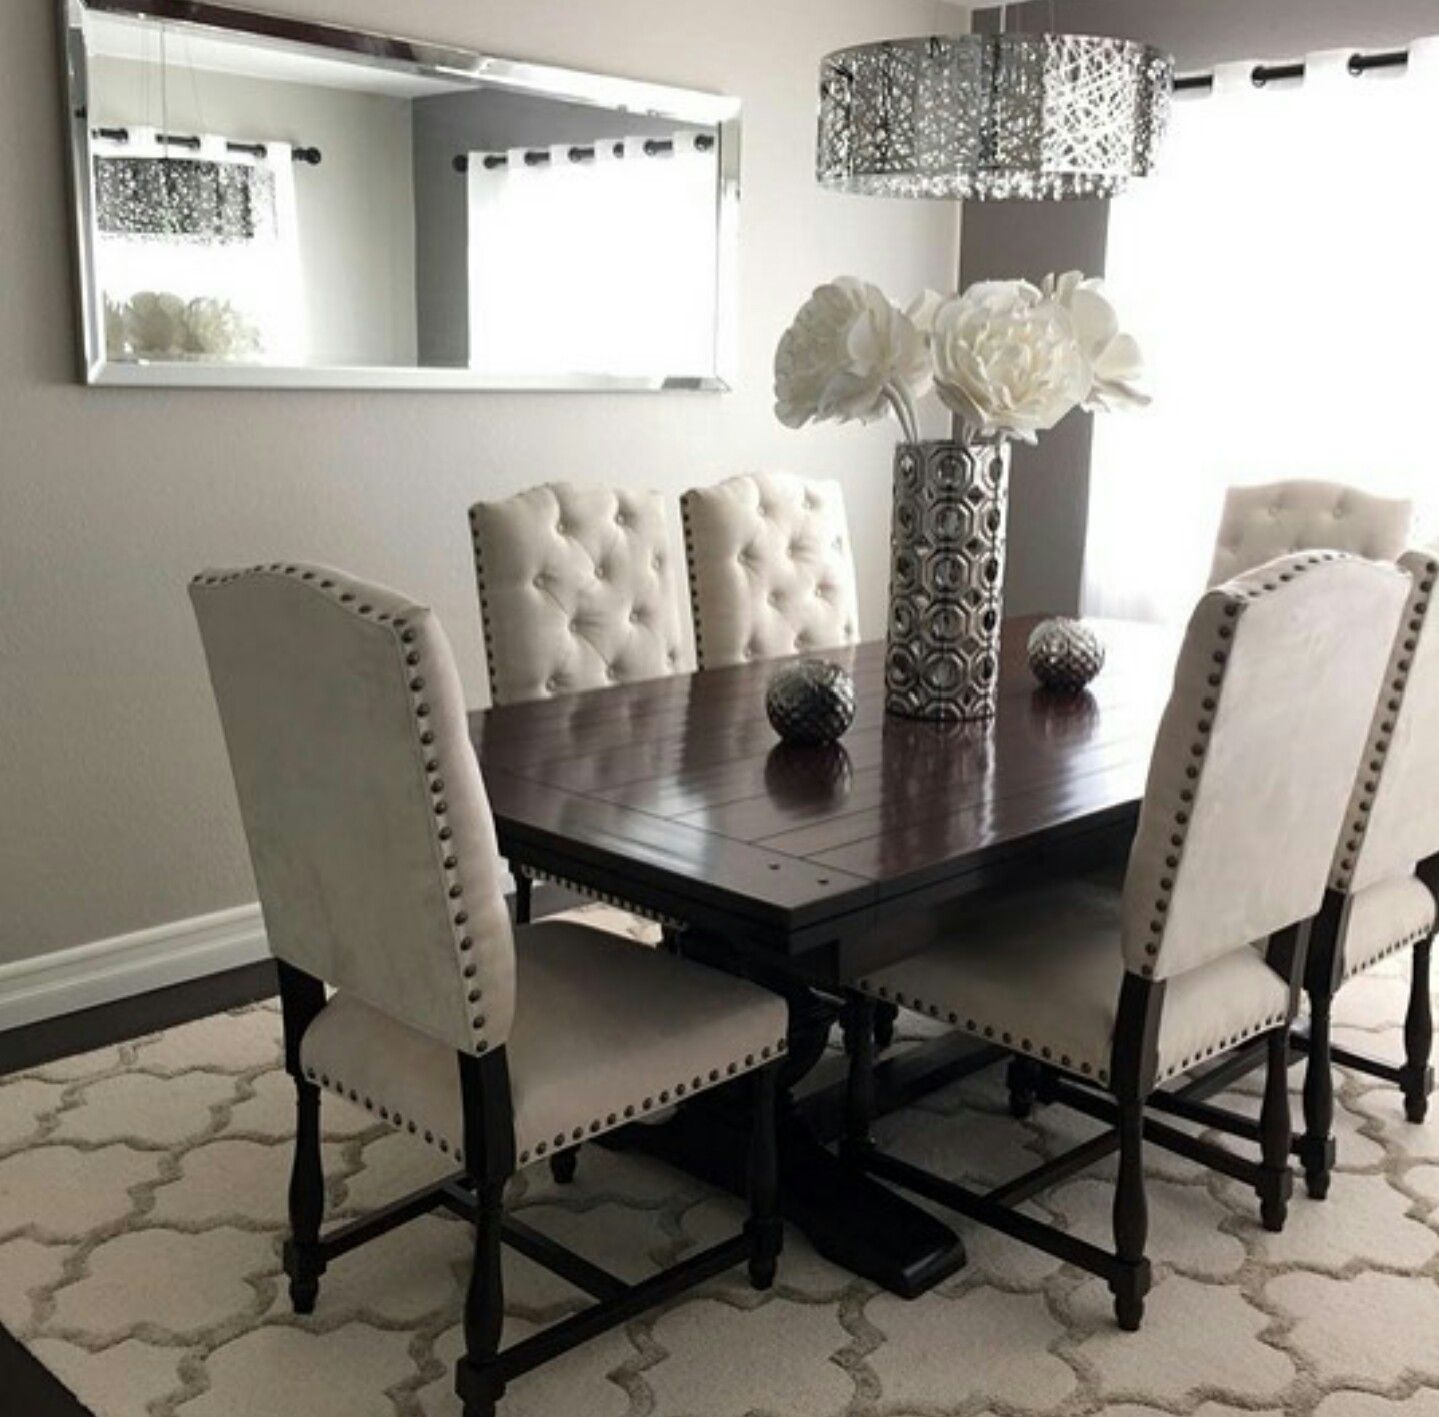 Z Gallerie Dinner Table | Formal dining room sets, Dining ...